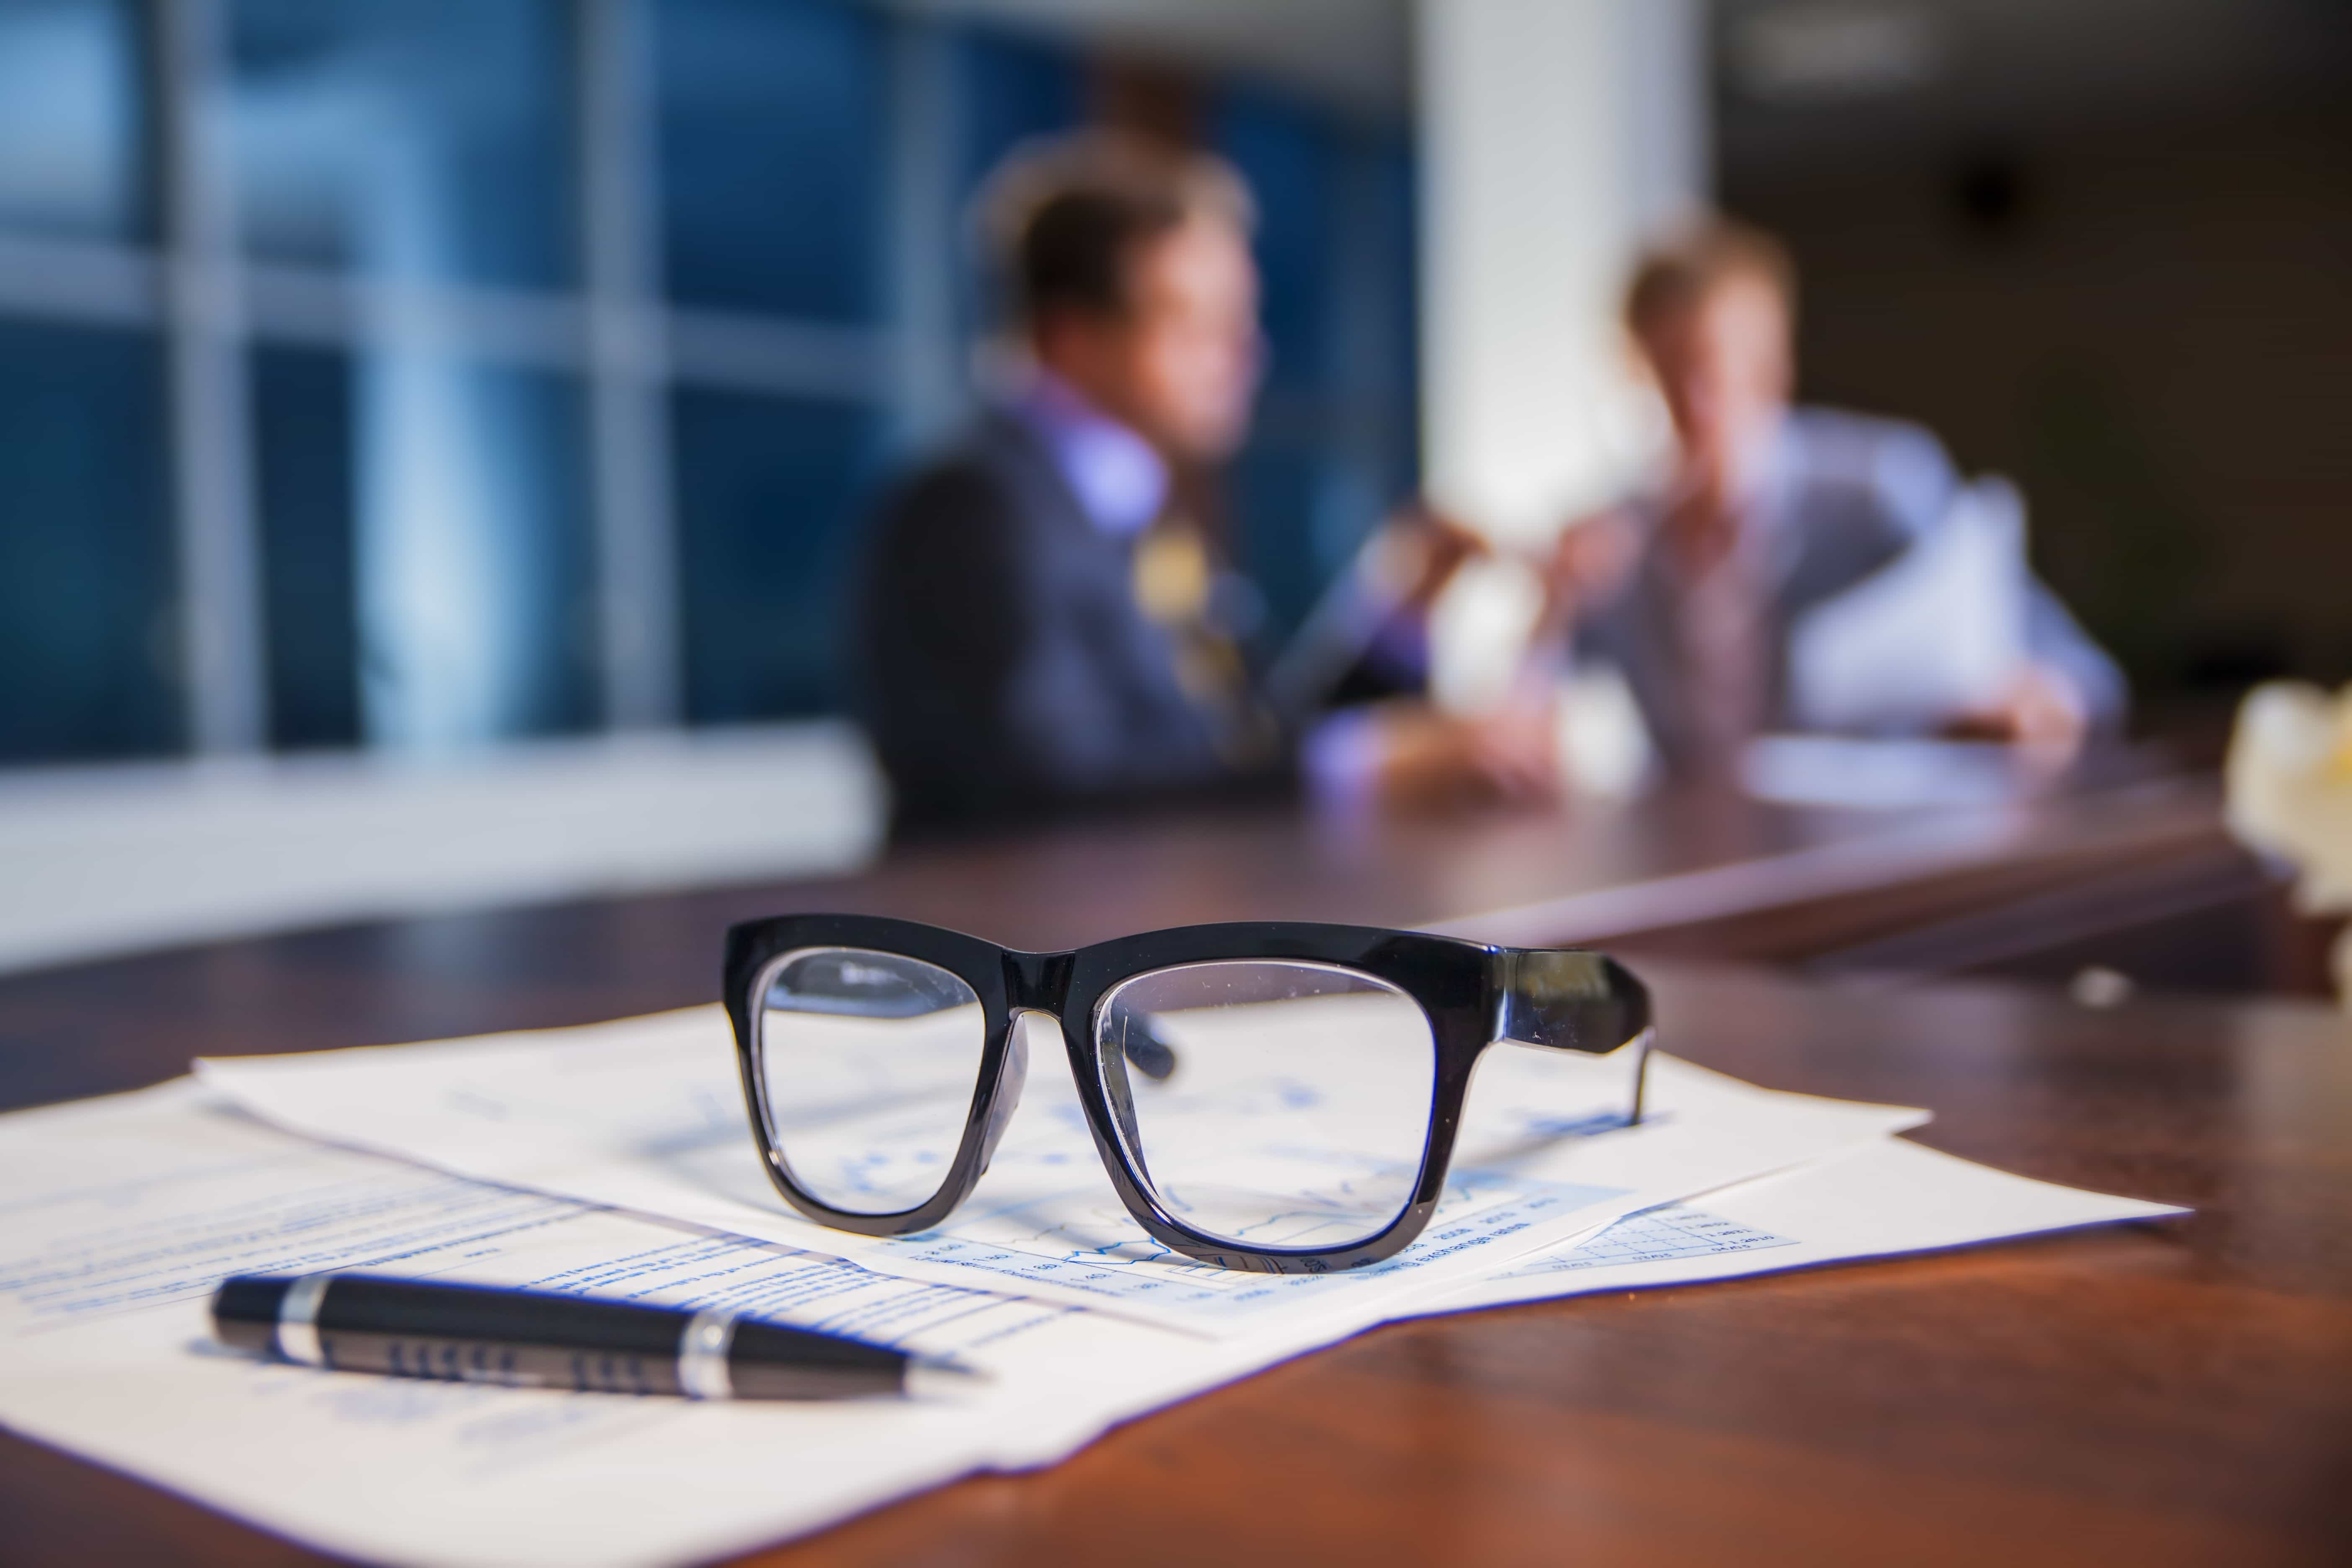 regulatory compliance: Glasses laying on a table, people discussing in the background